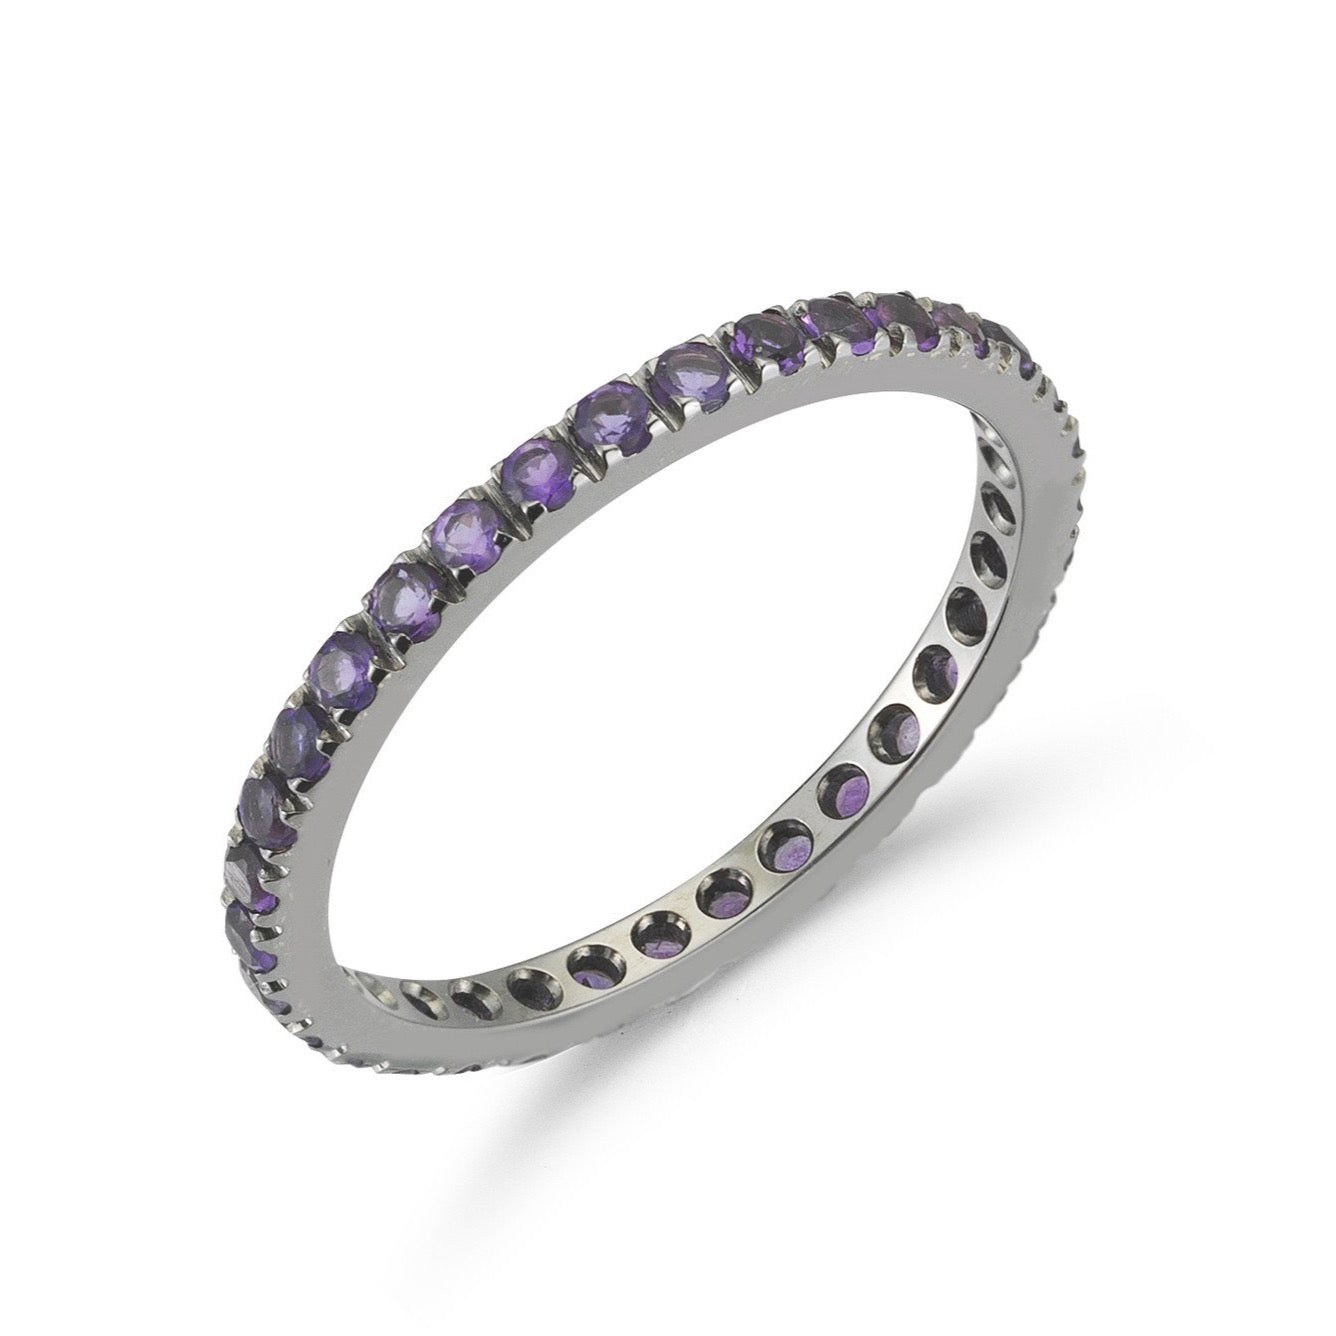 A-FURST-FRANCE-ETERNITY-BAND-RING-AMETHYST-BLACKENED-GOLD-A1290NA-1.5